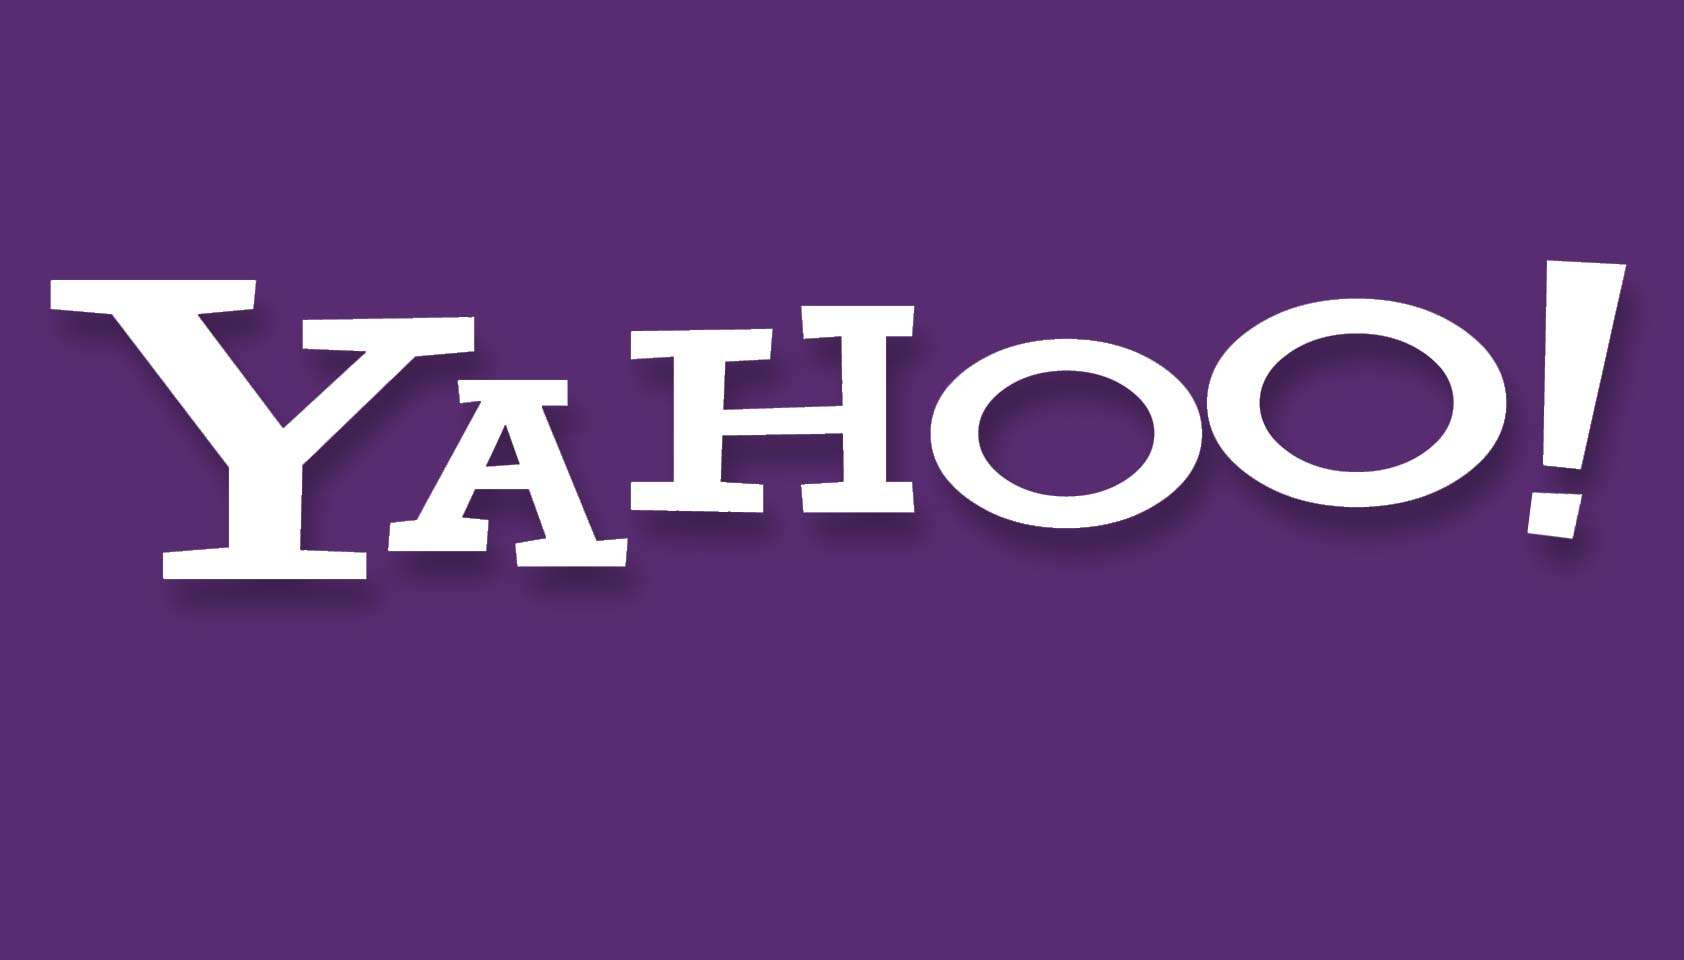 Yahoo images